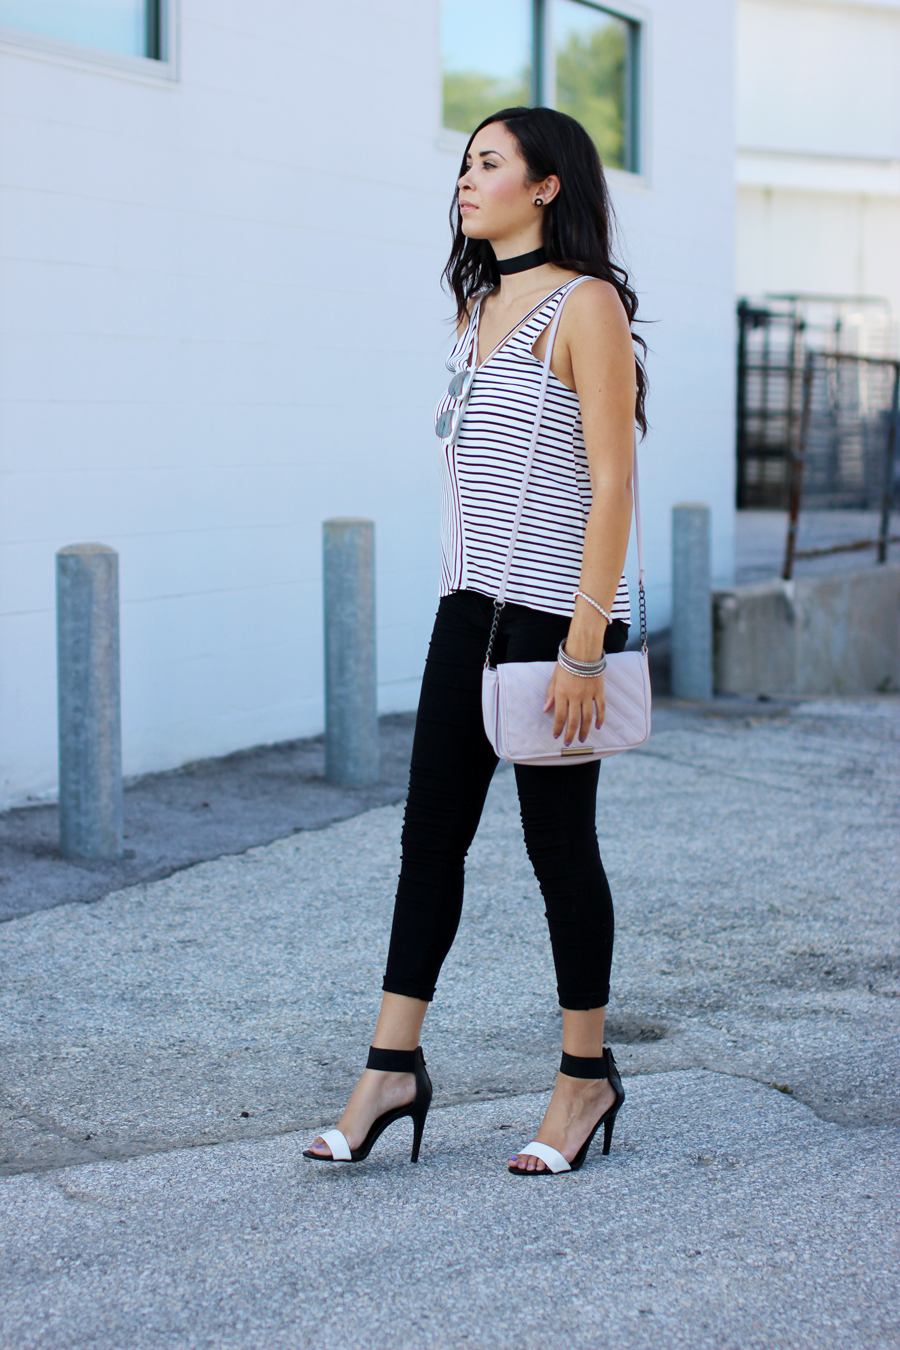 FTT-SHEIN-BLACK-WHITE-STRIPES-SUMMER-CHIC-8